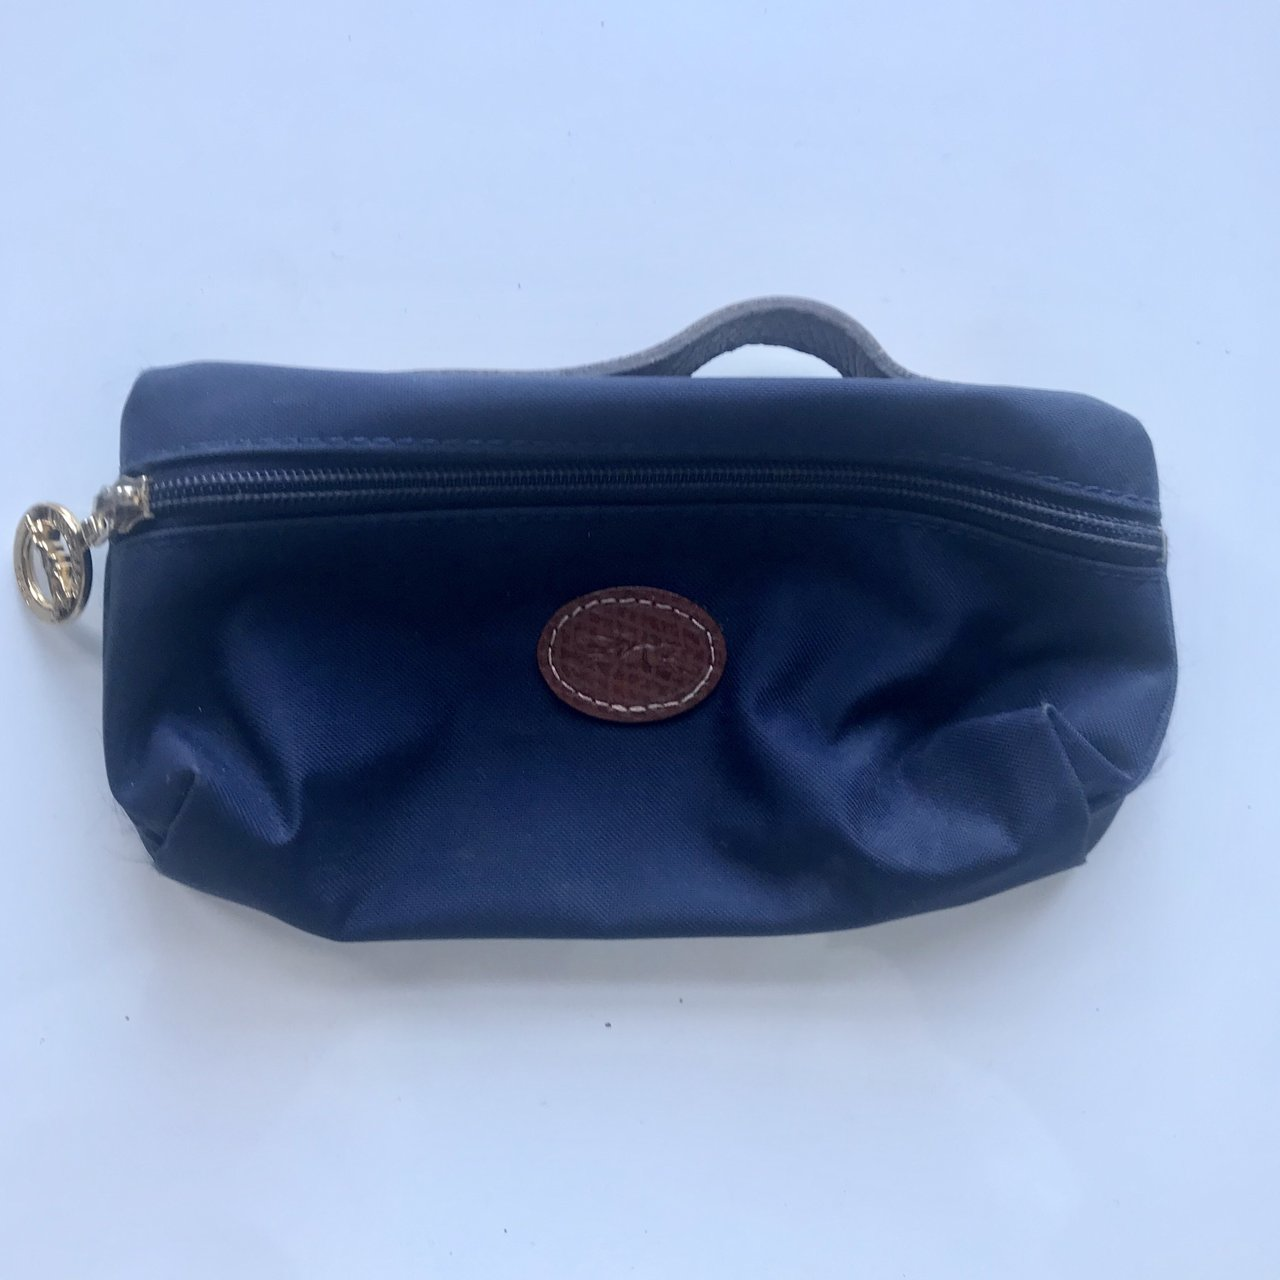 Longchamp Le Pliage navy blue and brown nylon mini makeup   - Depop e5cf0c3d1af11